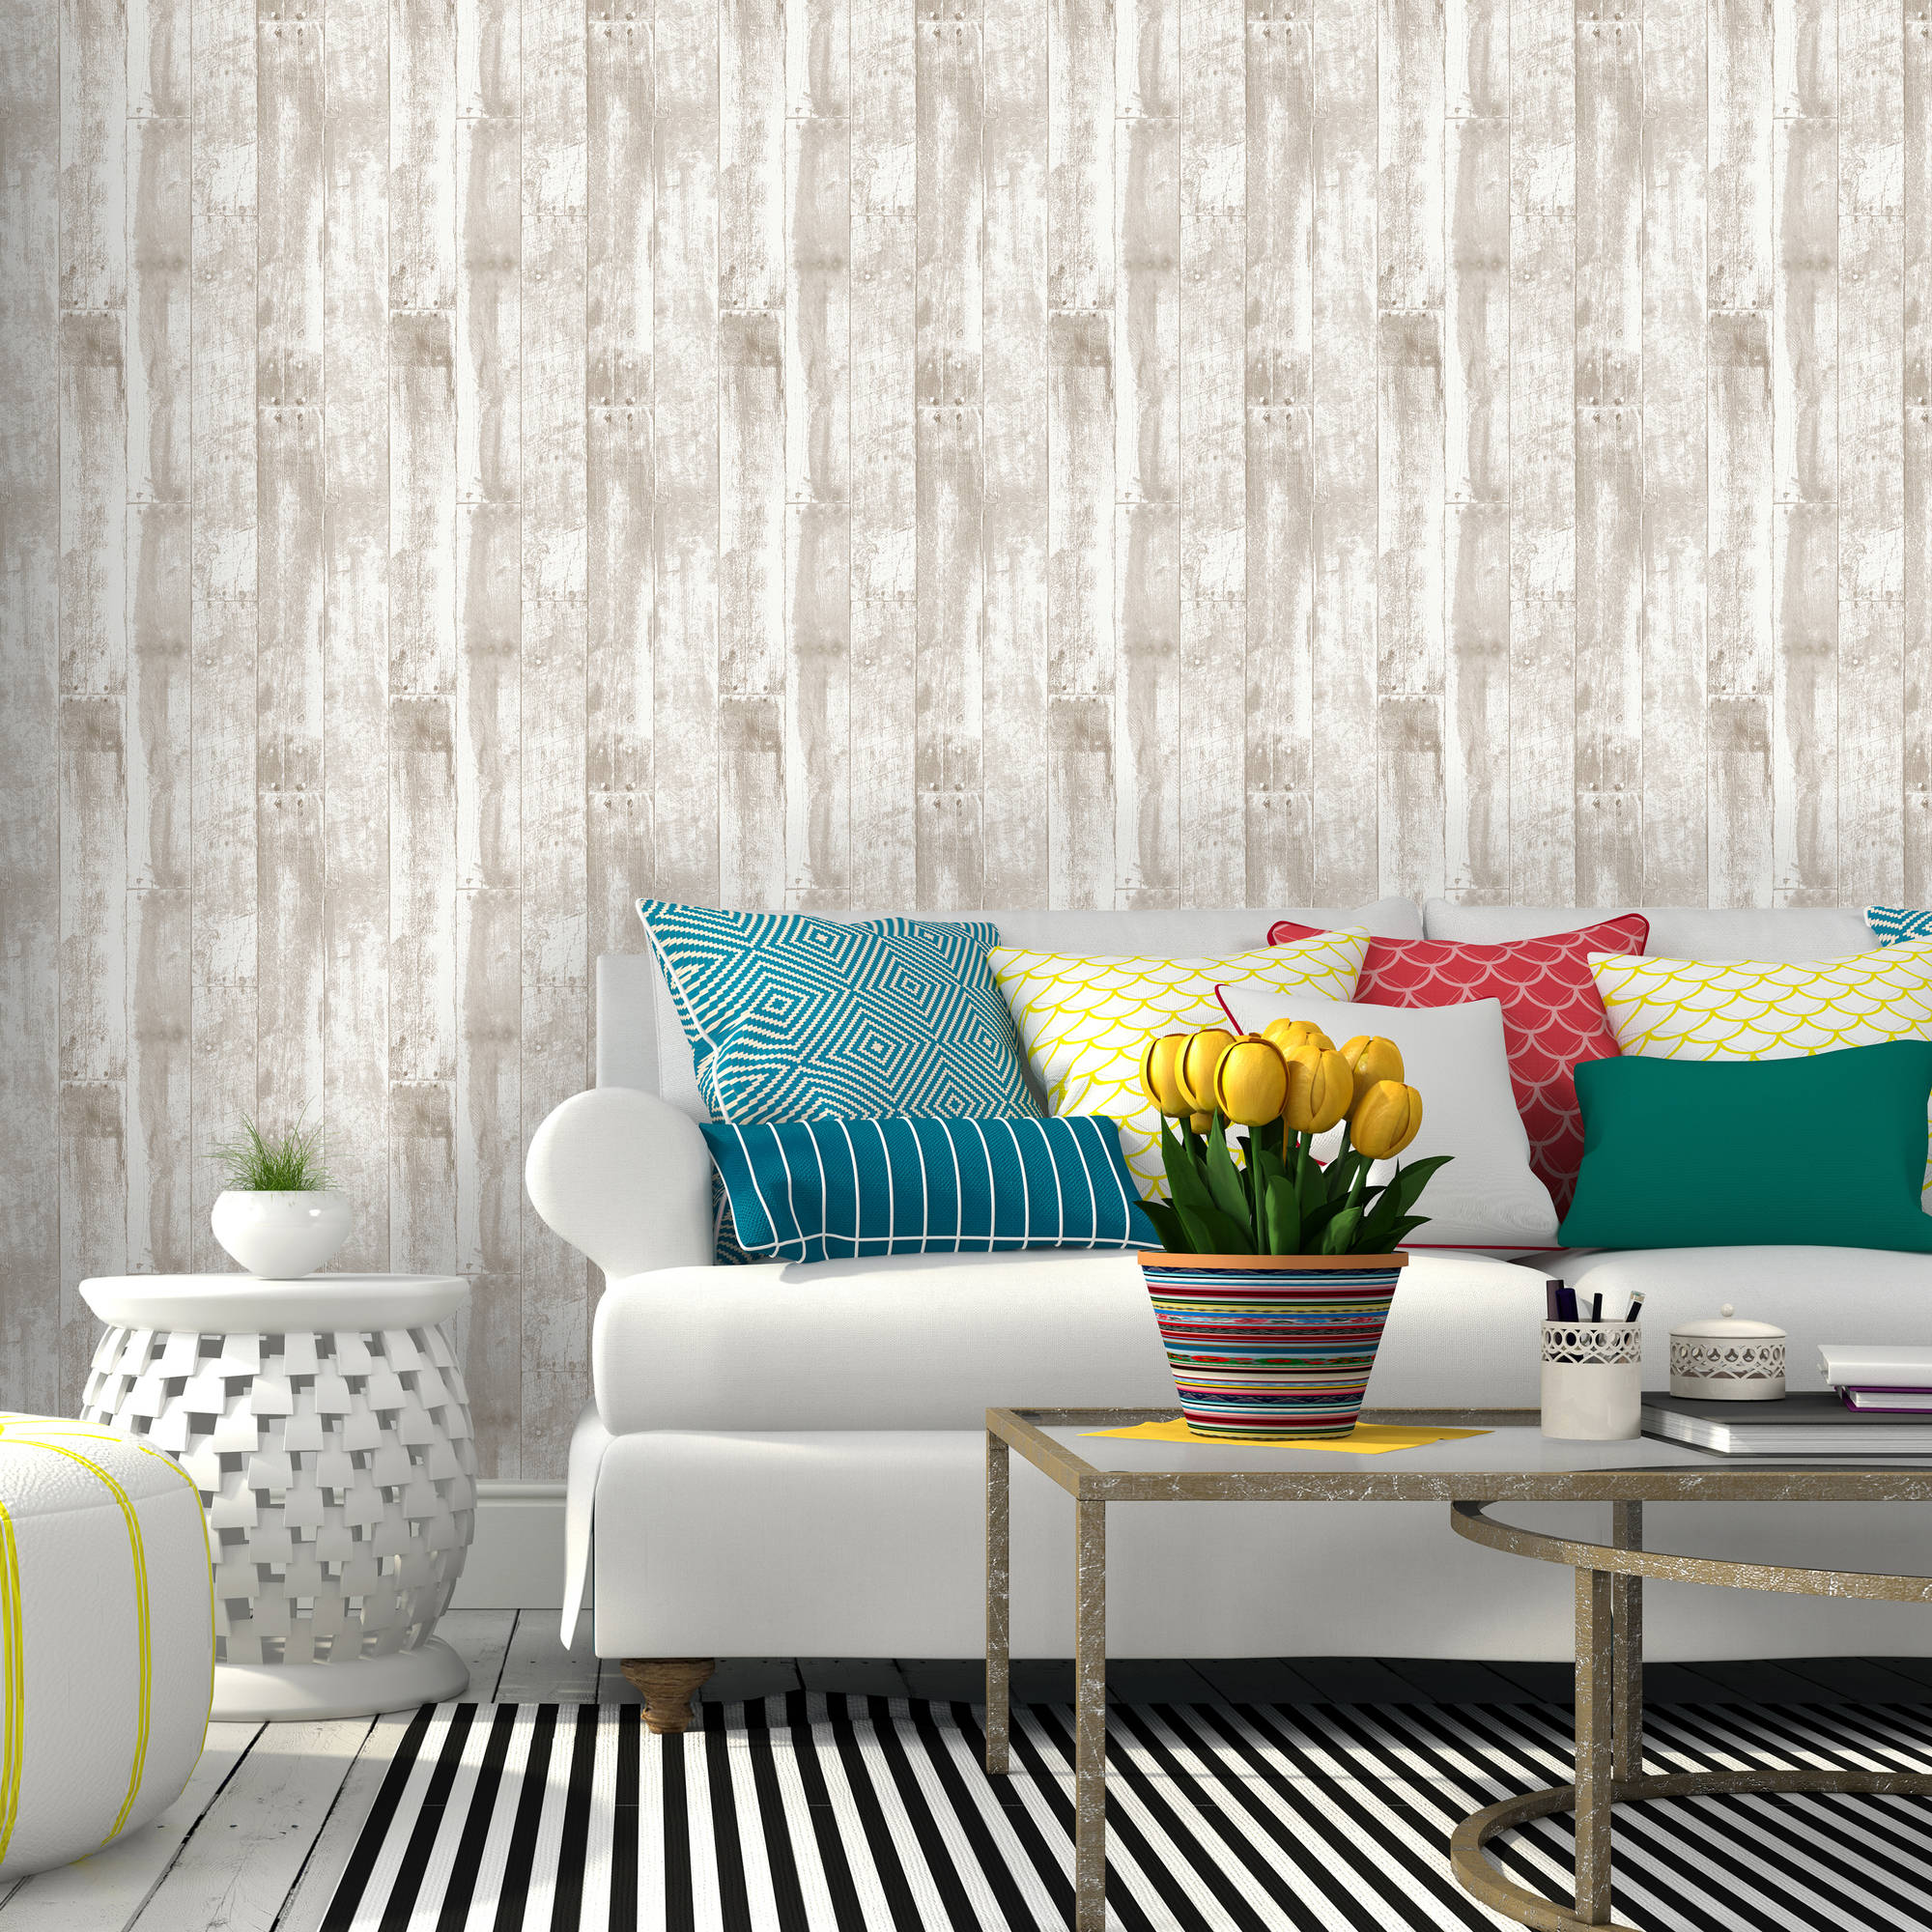 Repeel Removable Peel and Stick Wallpaper, Reclaimed Wood, Brown